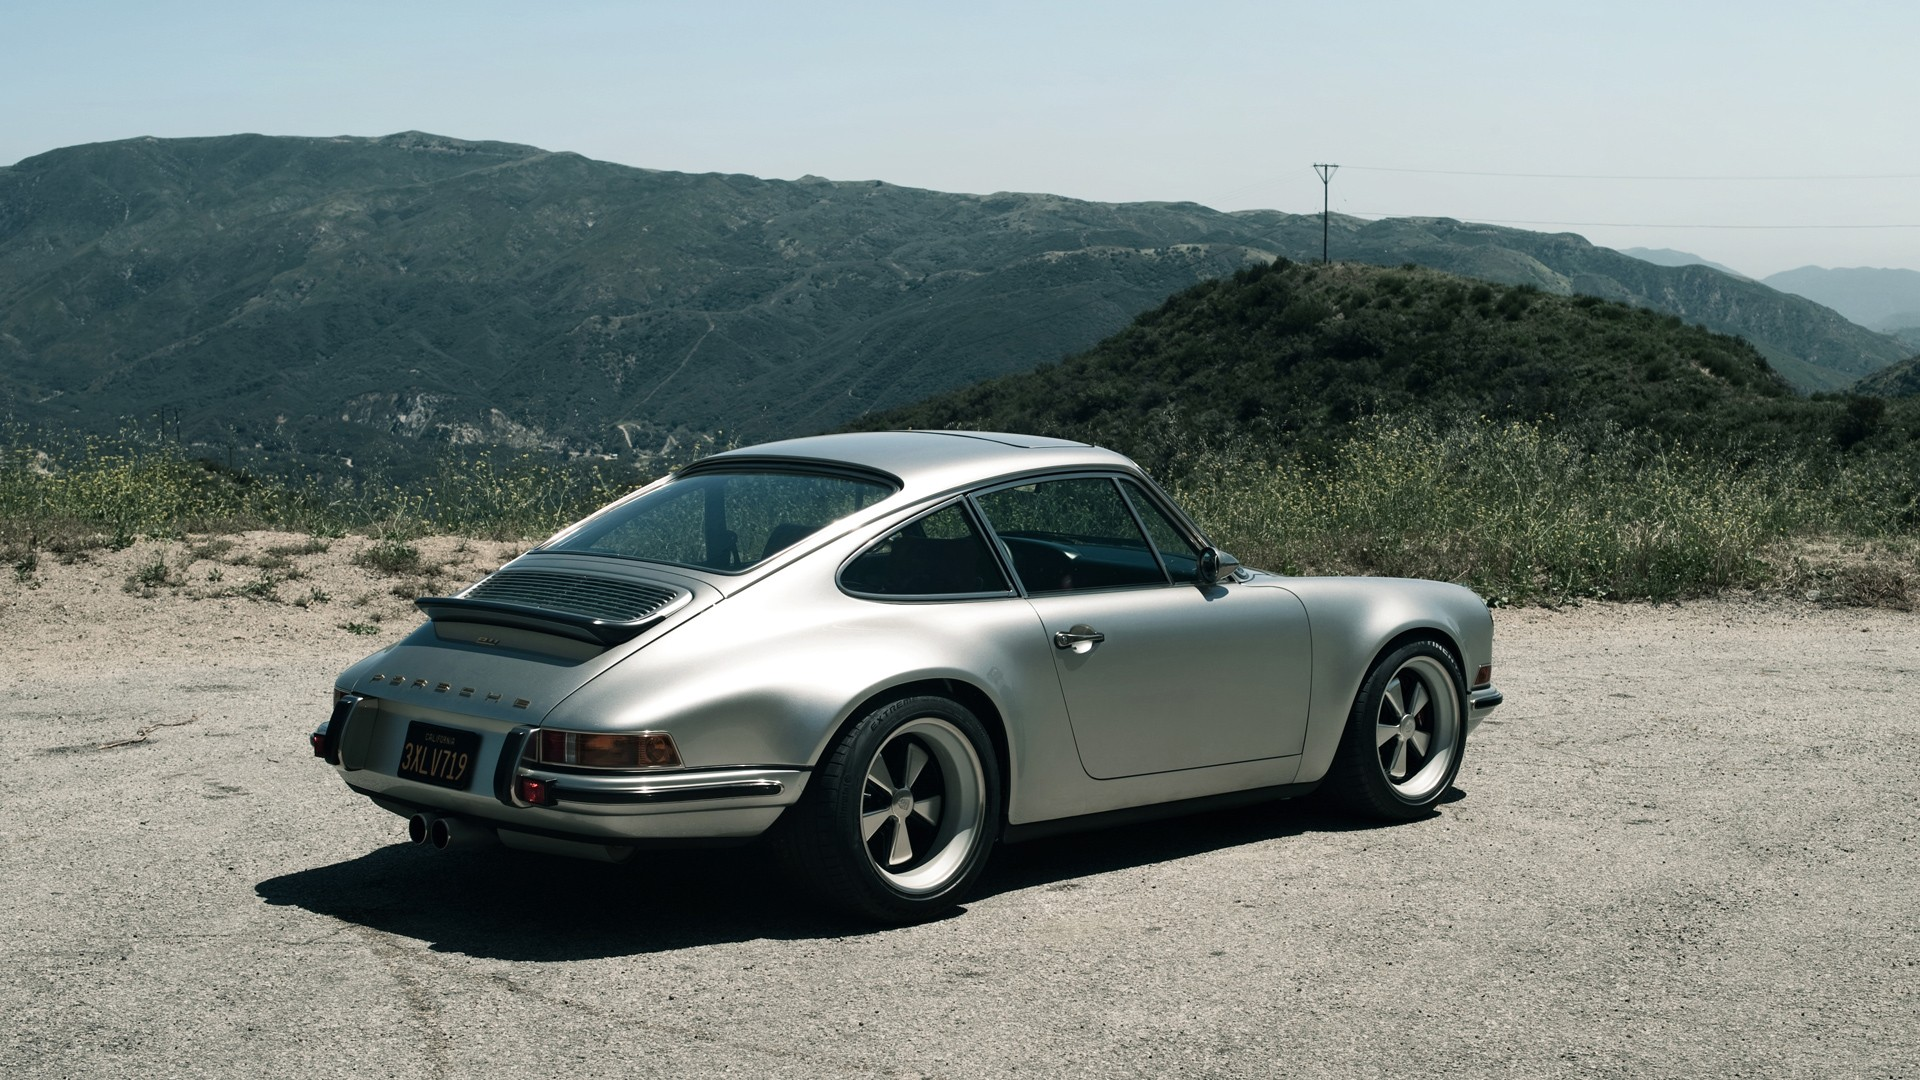 Porsche 911 Classic 2 Wallpaper  HD Car Wallpapers